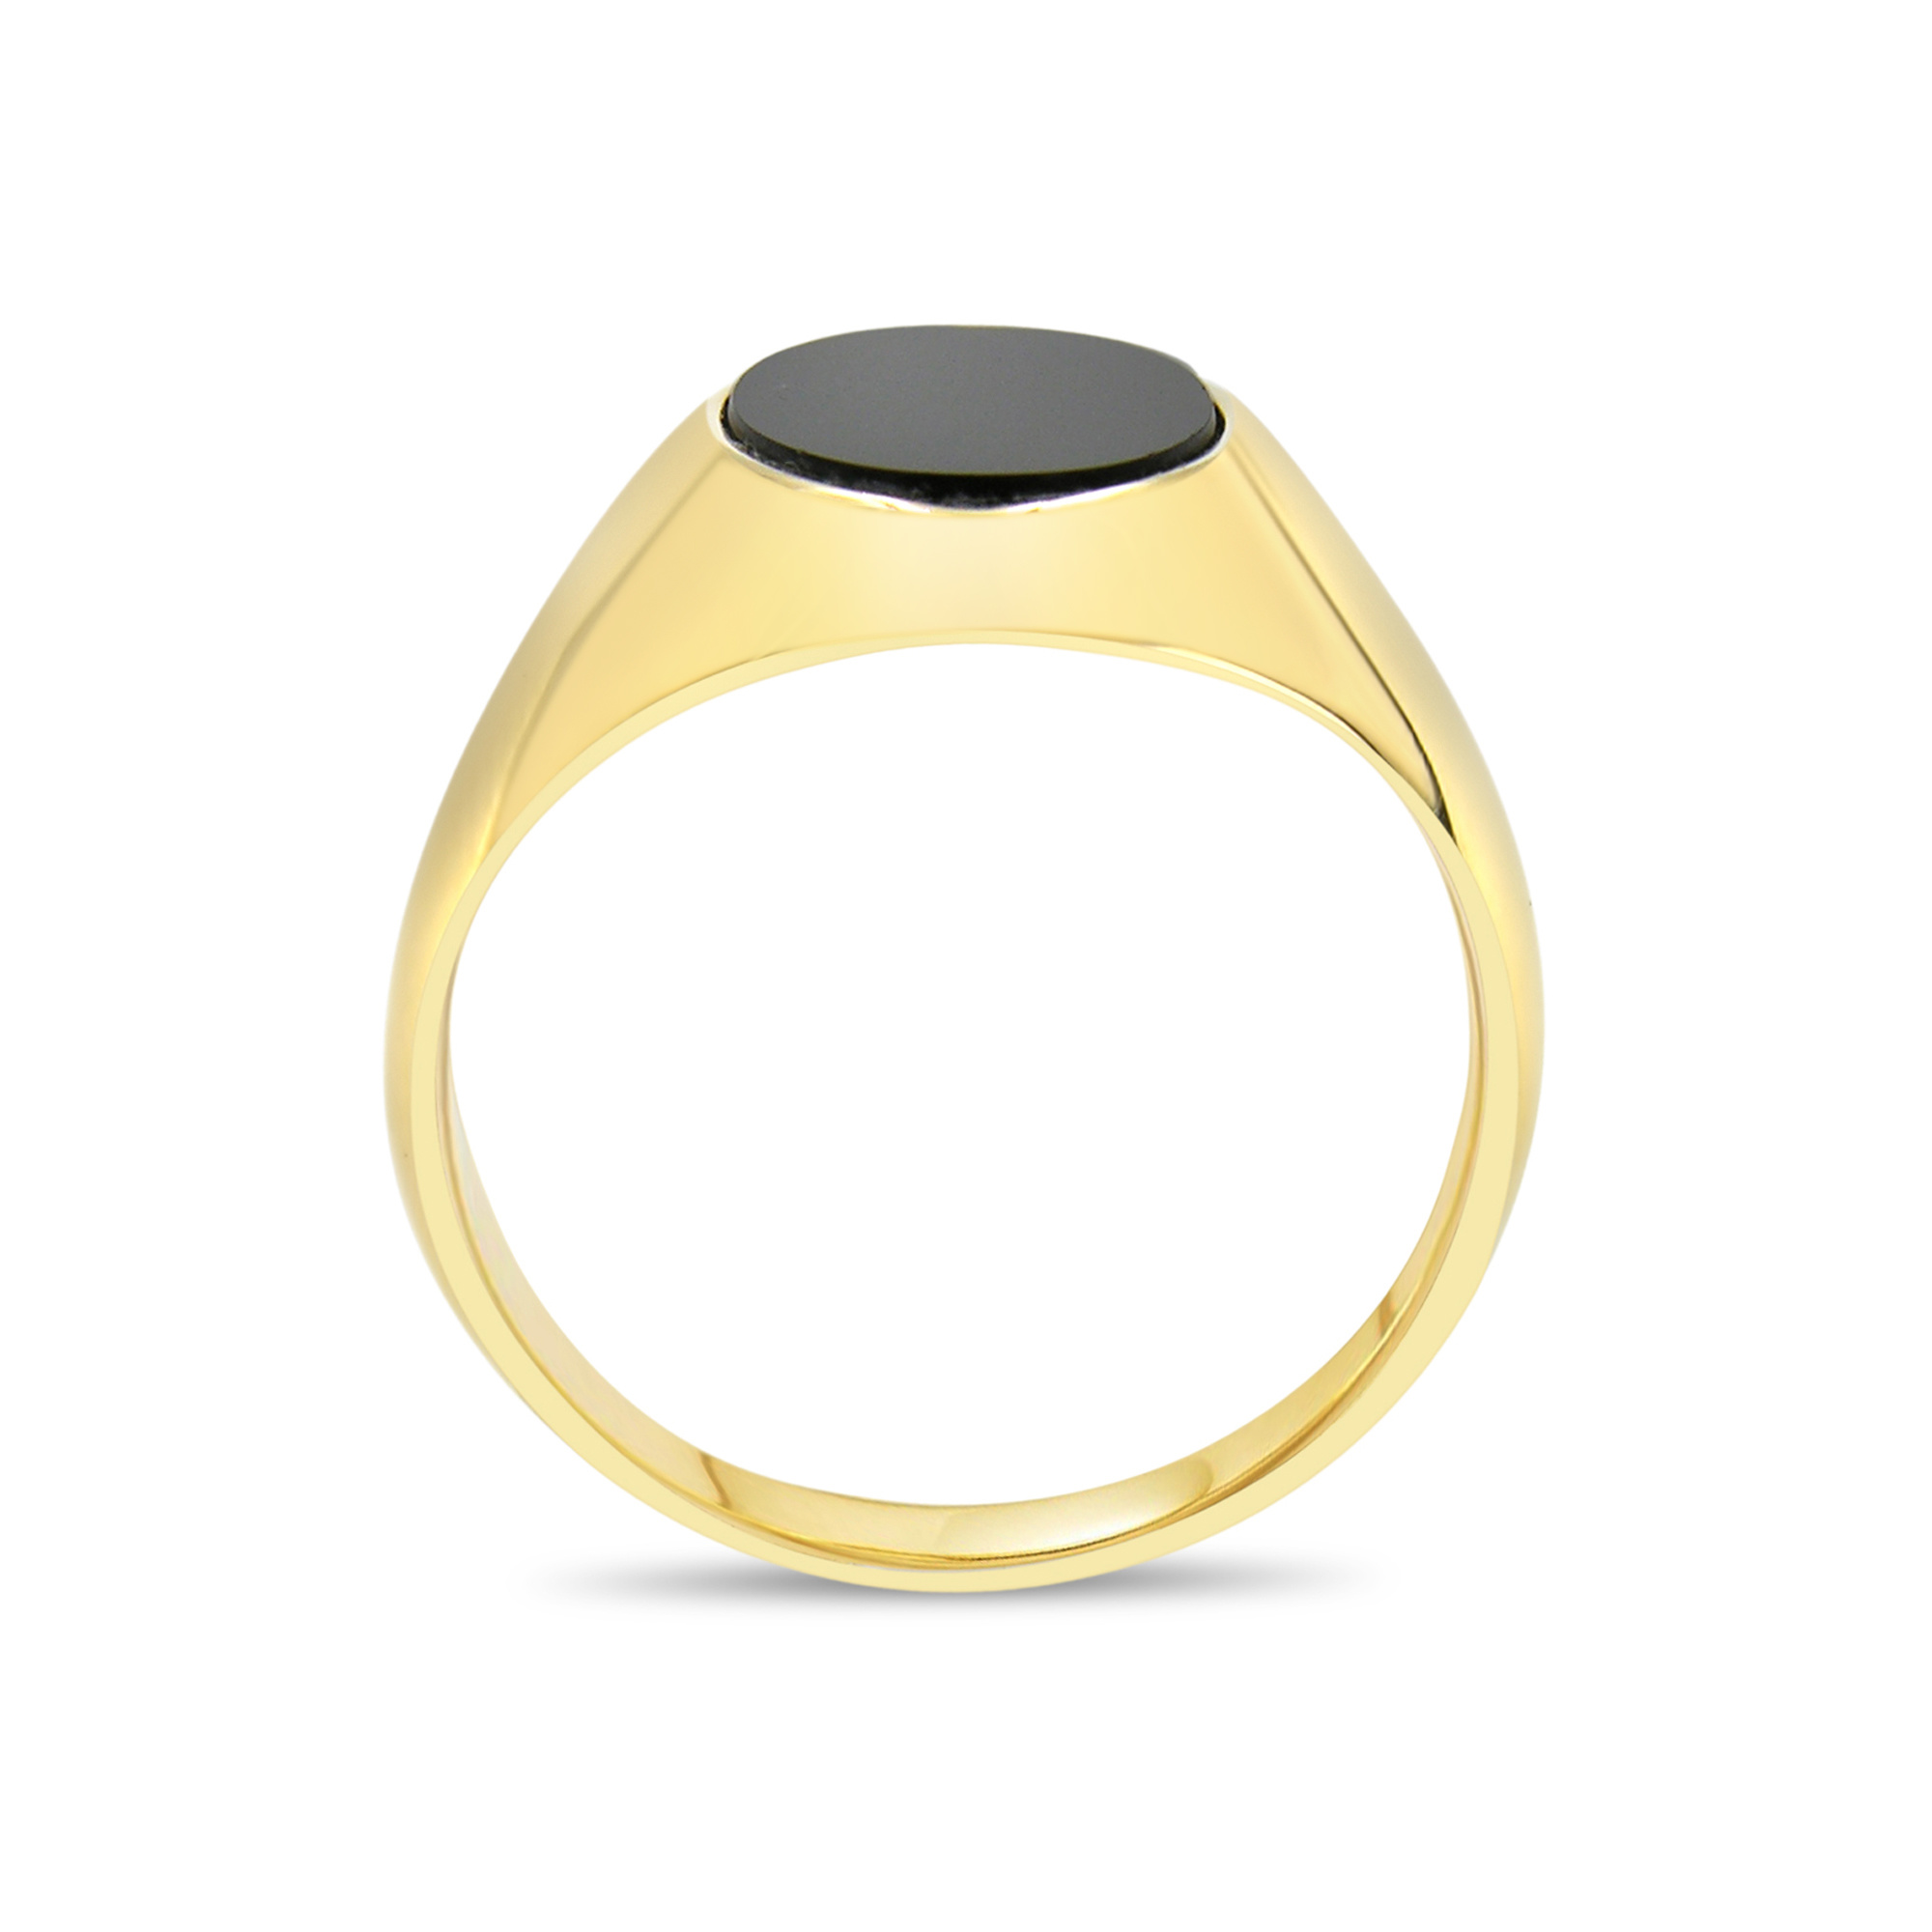 18 kt yellow gold men's ring with onyx